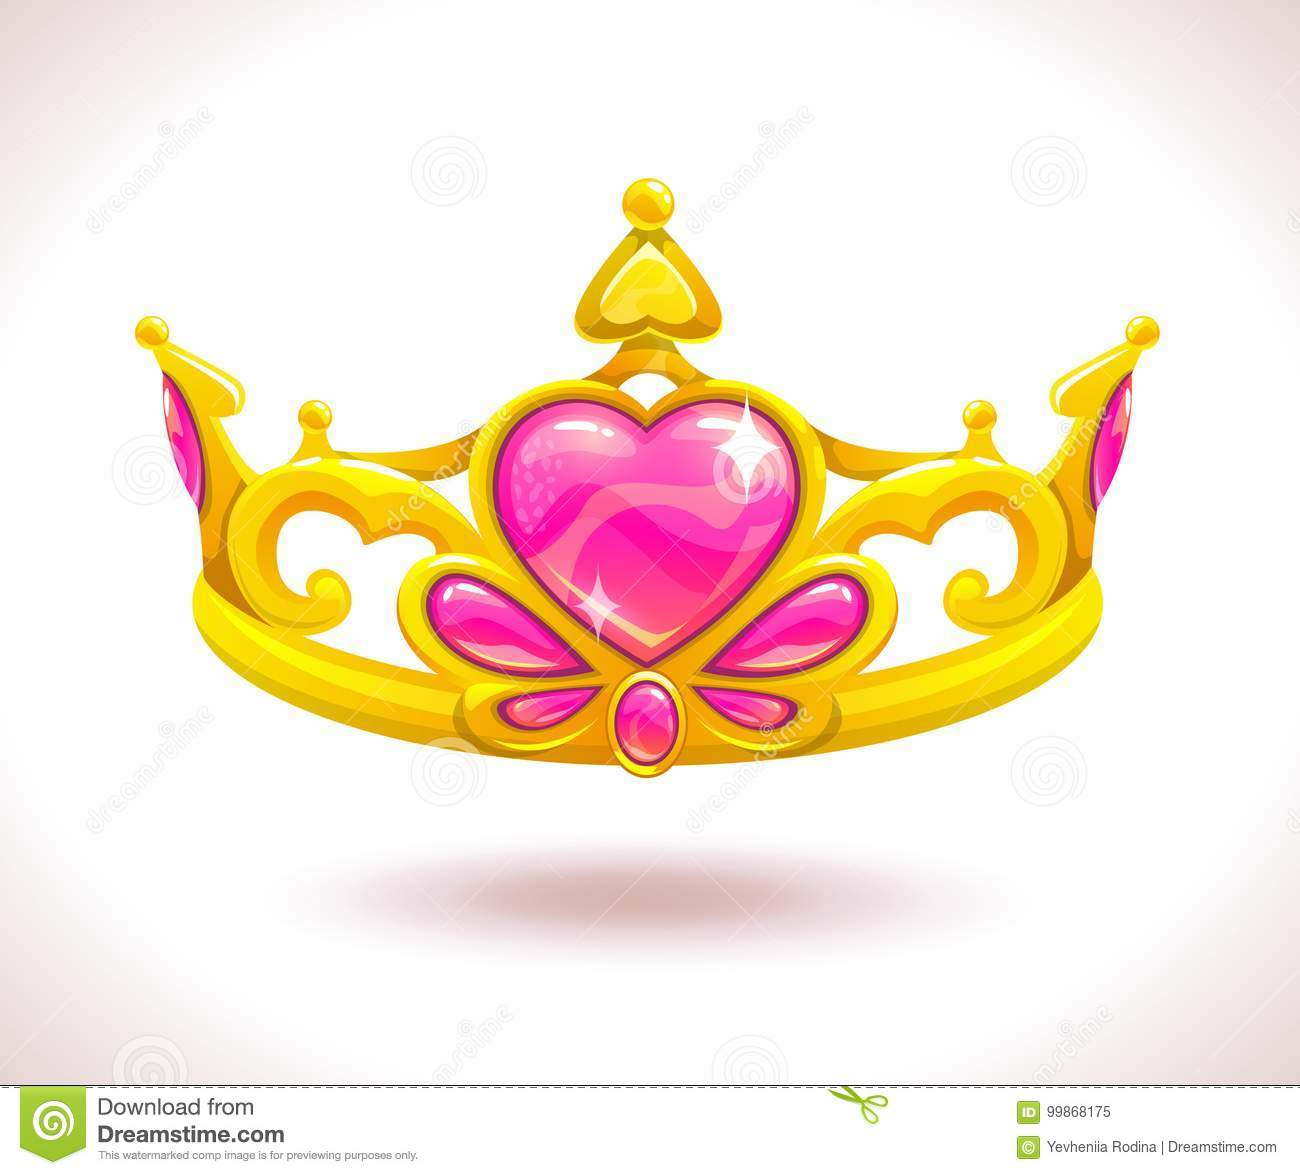 Beautiful Golden Princess Crown Stock Vector Illustration Of Jewelry Heart 99868175 Download and share clipart about cartoon princess crown clip art you can download (5662x3928) cartoon princess crown clip art pencil crown graphic royal art gallery animal art deco luxury pop art fantasy art design symbol element cute ancient isolated princess castle jewelry kids king crown. https www dreamstime com beautiful golden princess crown pink ruby hearts vector cartoon diadem icon image99868175